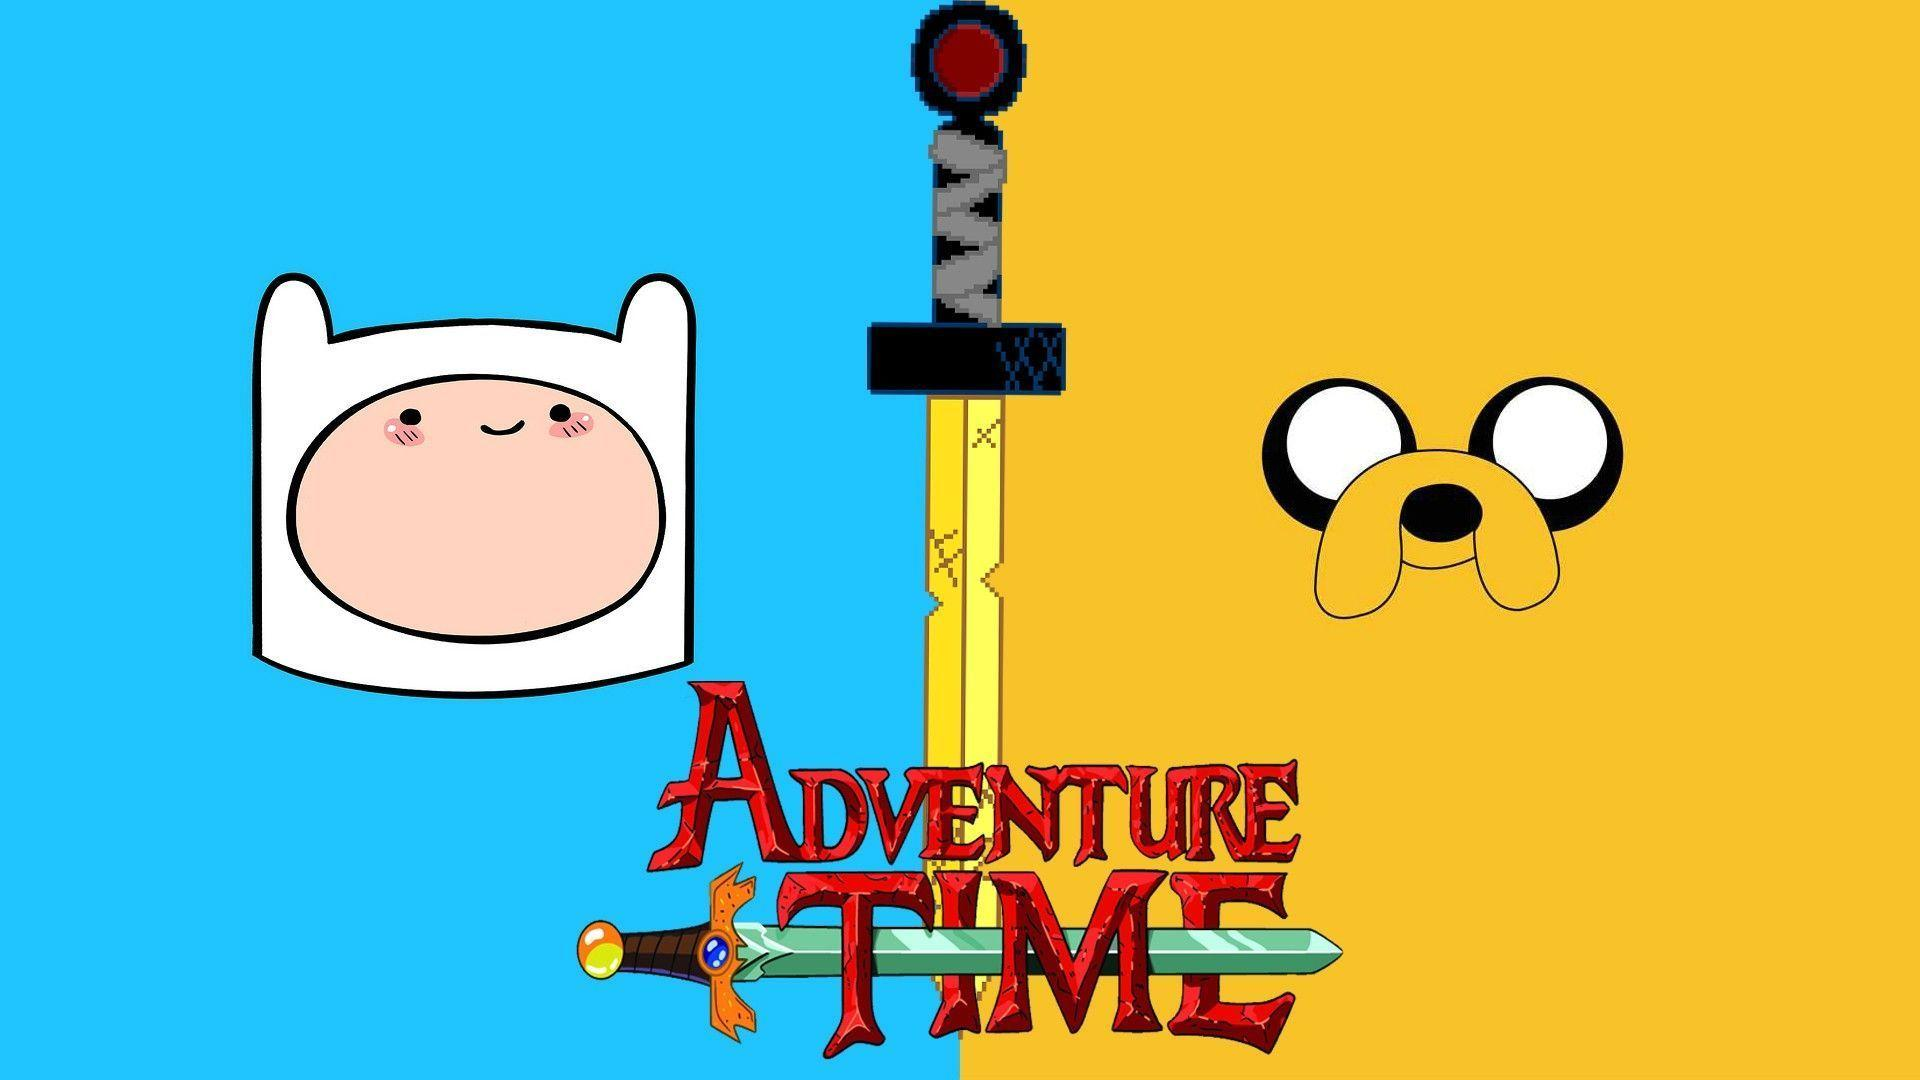 adventure time blue background - photo #41